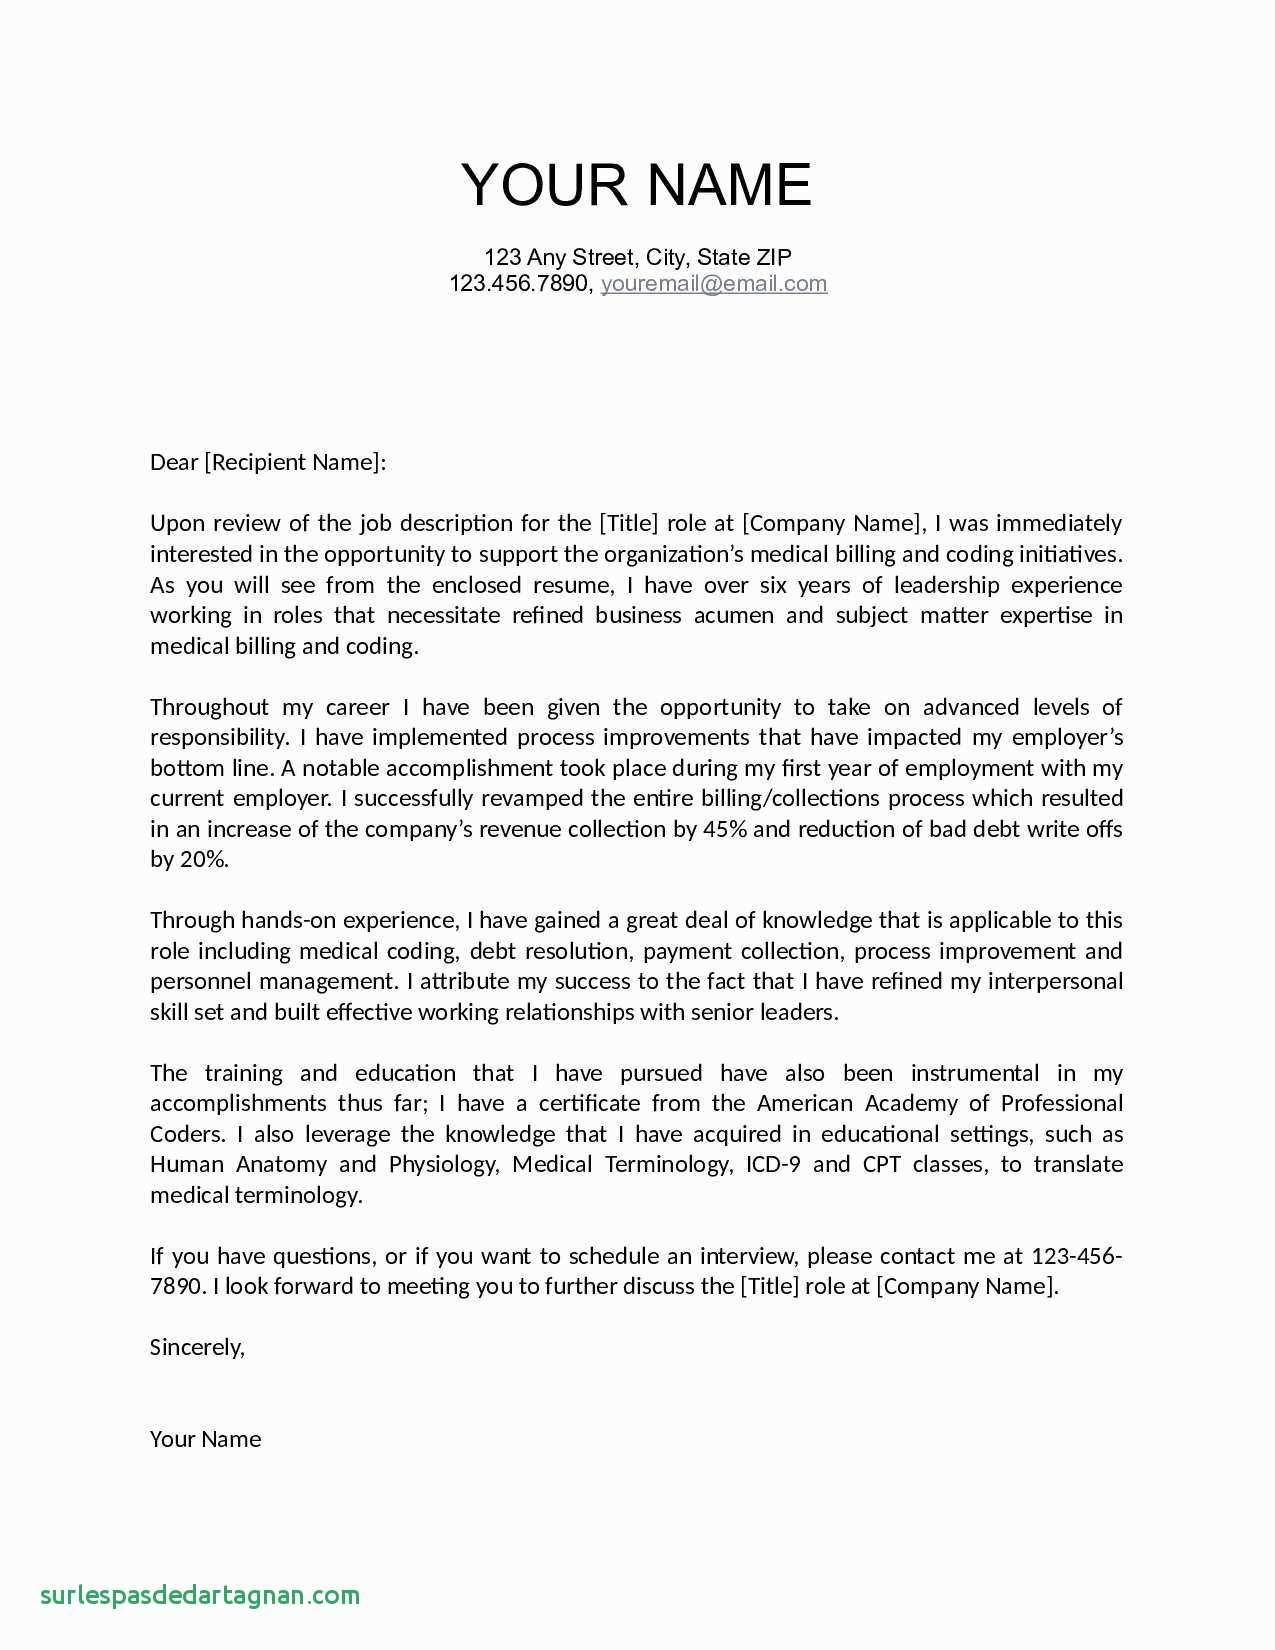 Business Partnership Letter Template - Business Partnership Letter Template Inspirationa Fresh Job Fer